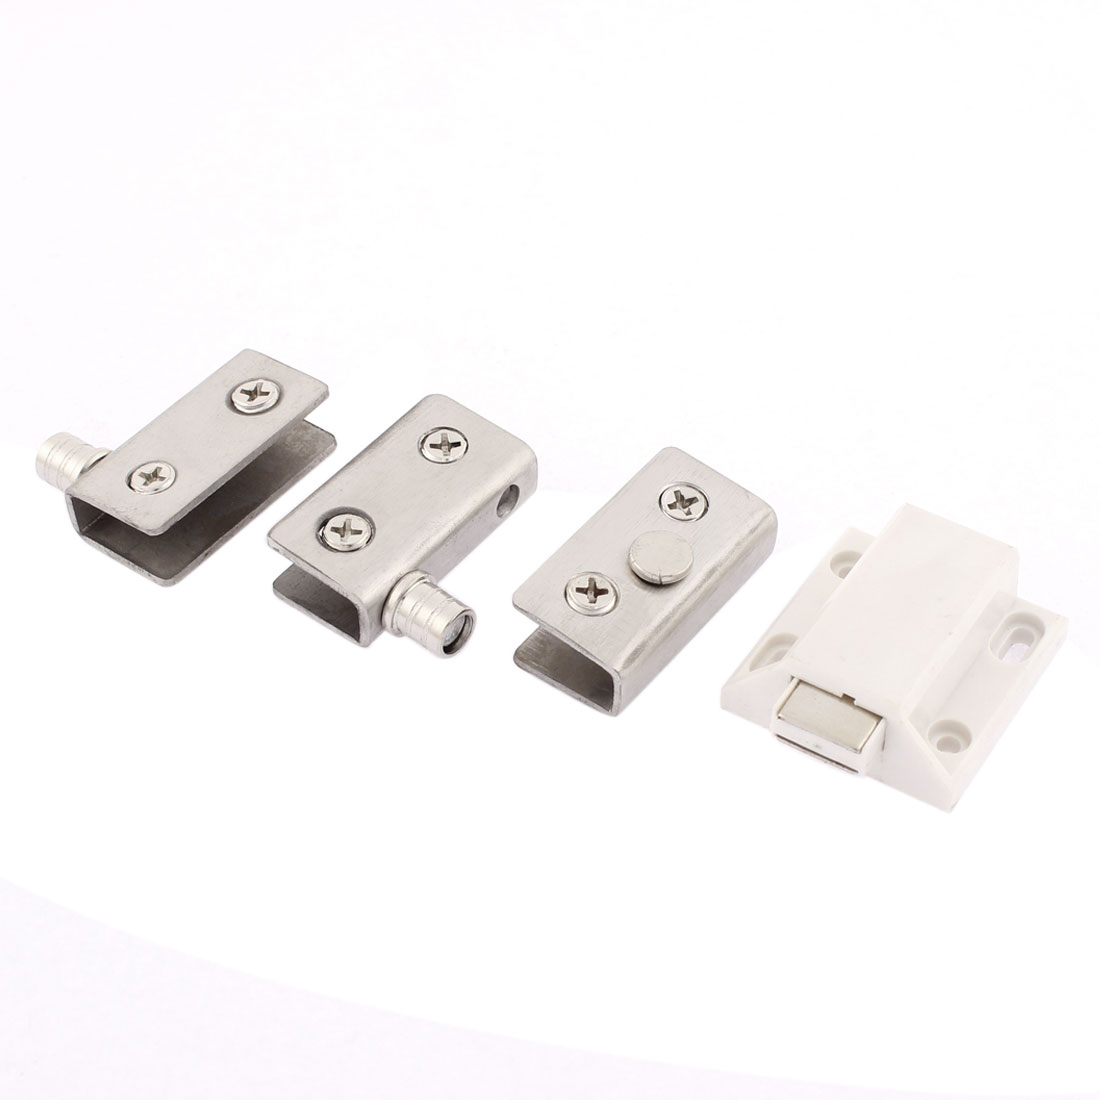 Cupboard Door 6mm-8mm Thickness Glass Clamp Clip Magnetic Catch Latch Set